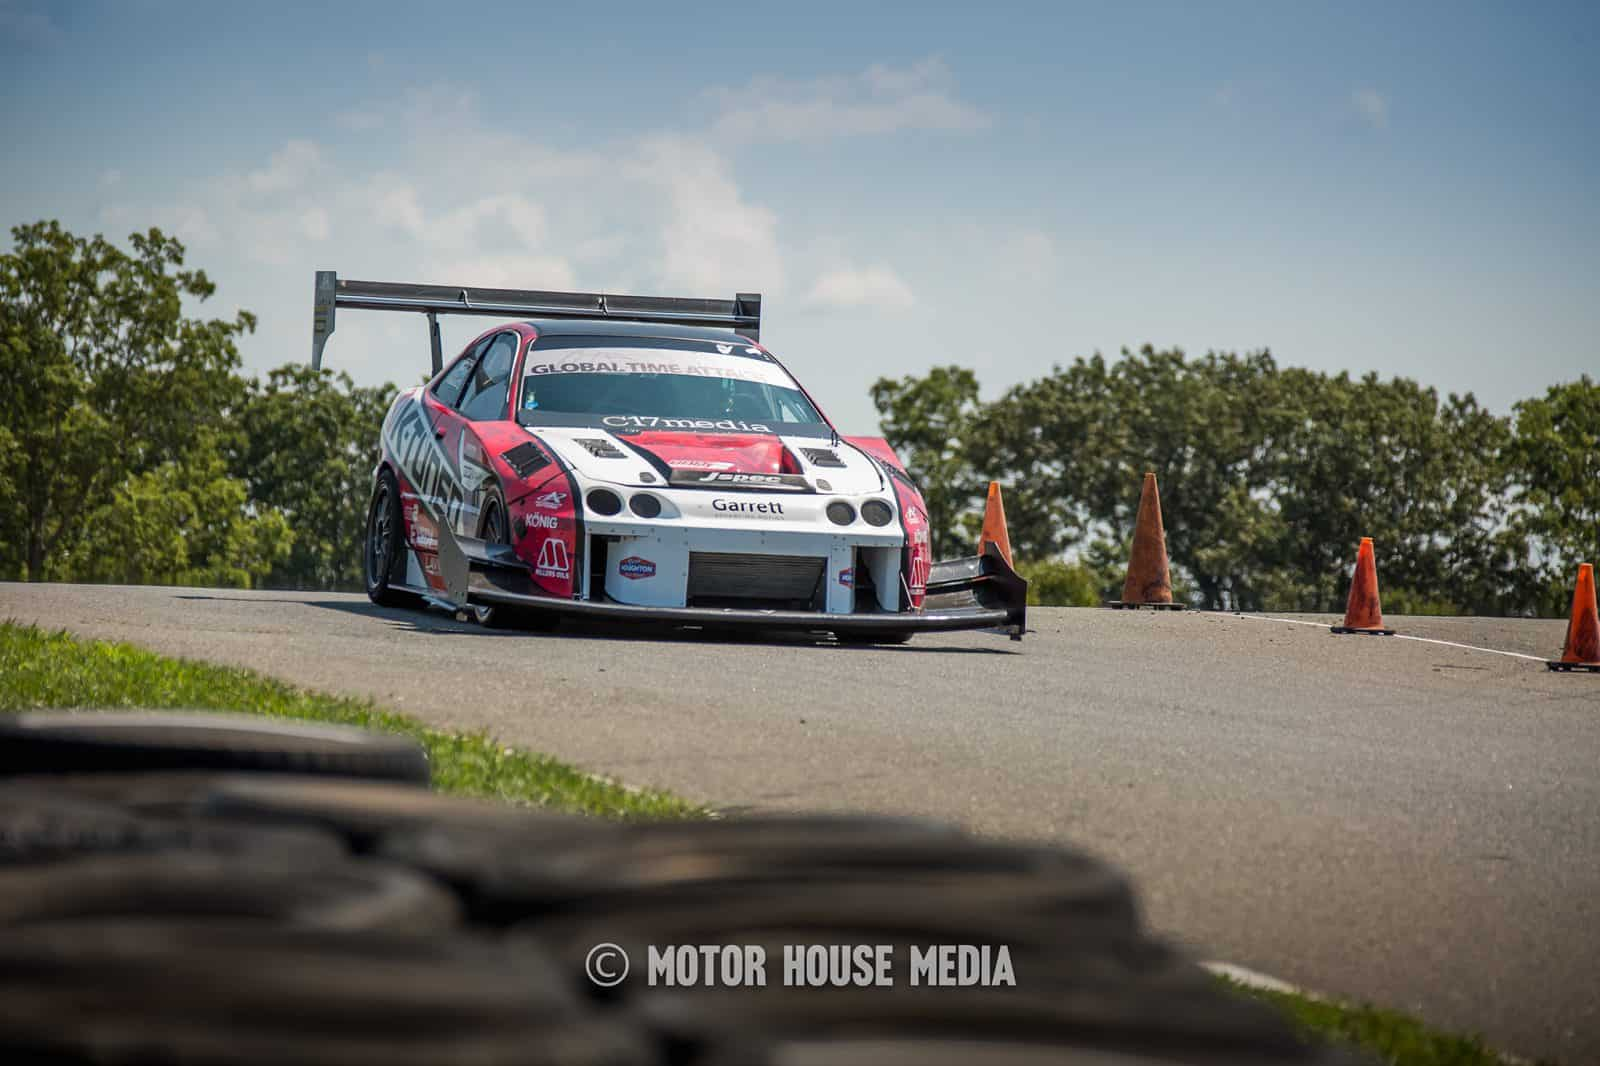 James Houghton's Acura Integra Type-R cresting turn 1 at NJMP